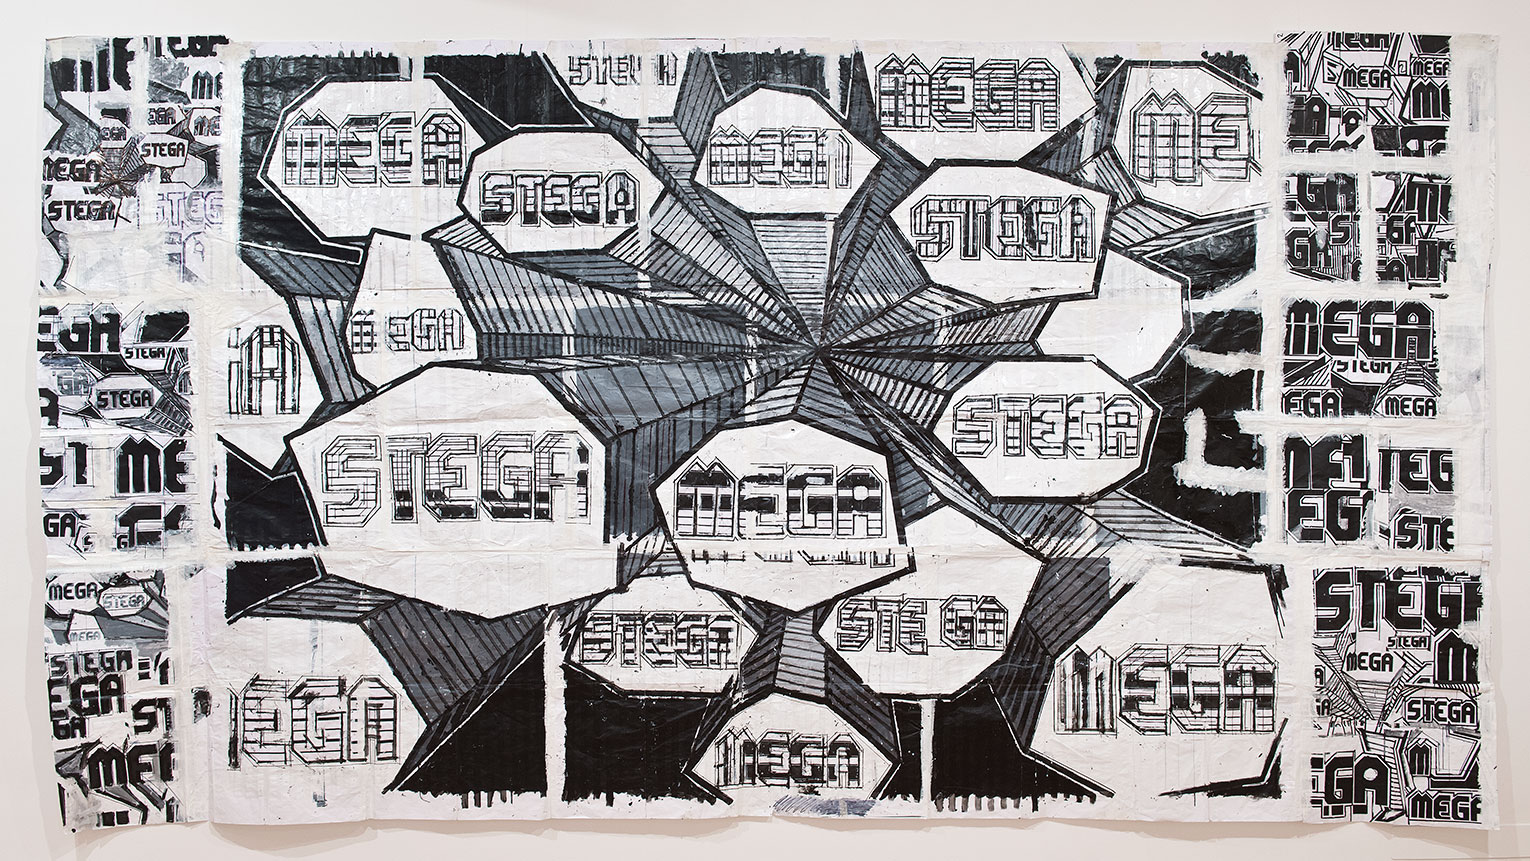 <b>Title:&nbsp;</b>Megastega<br /><b>Year:&nbsp;</b>2013<br /><b>Medium:&nbsp;</b>Drawing on paper<br /><b>Size:&nbsp;</b>260 x 450 cm